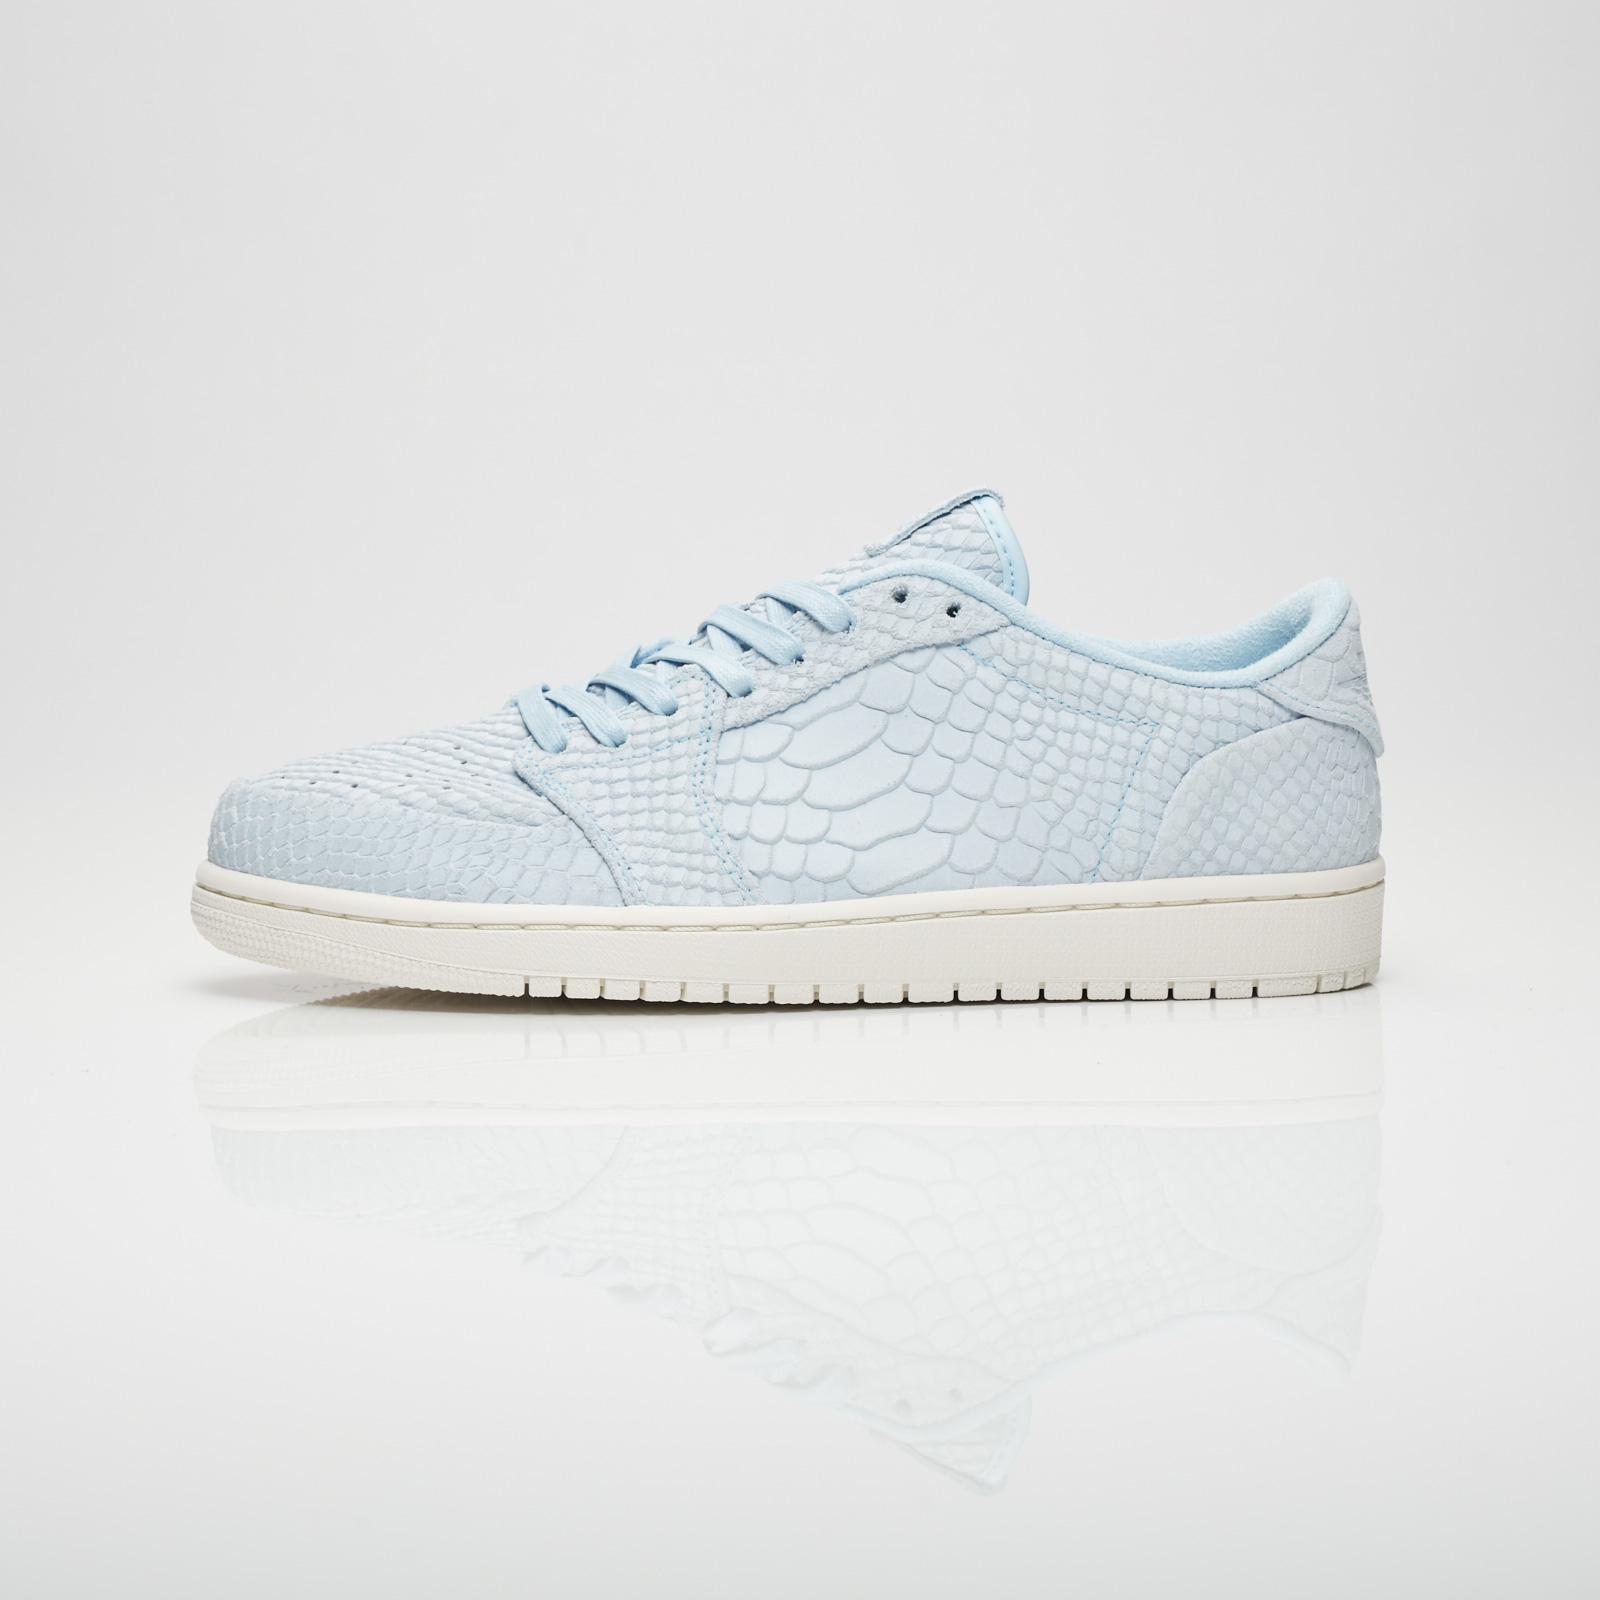 856d43c5a8e1 Jordan Brand Air Jordan 1 Retro Low NS - 872782-441 - Sneakersnstuff ...